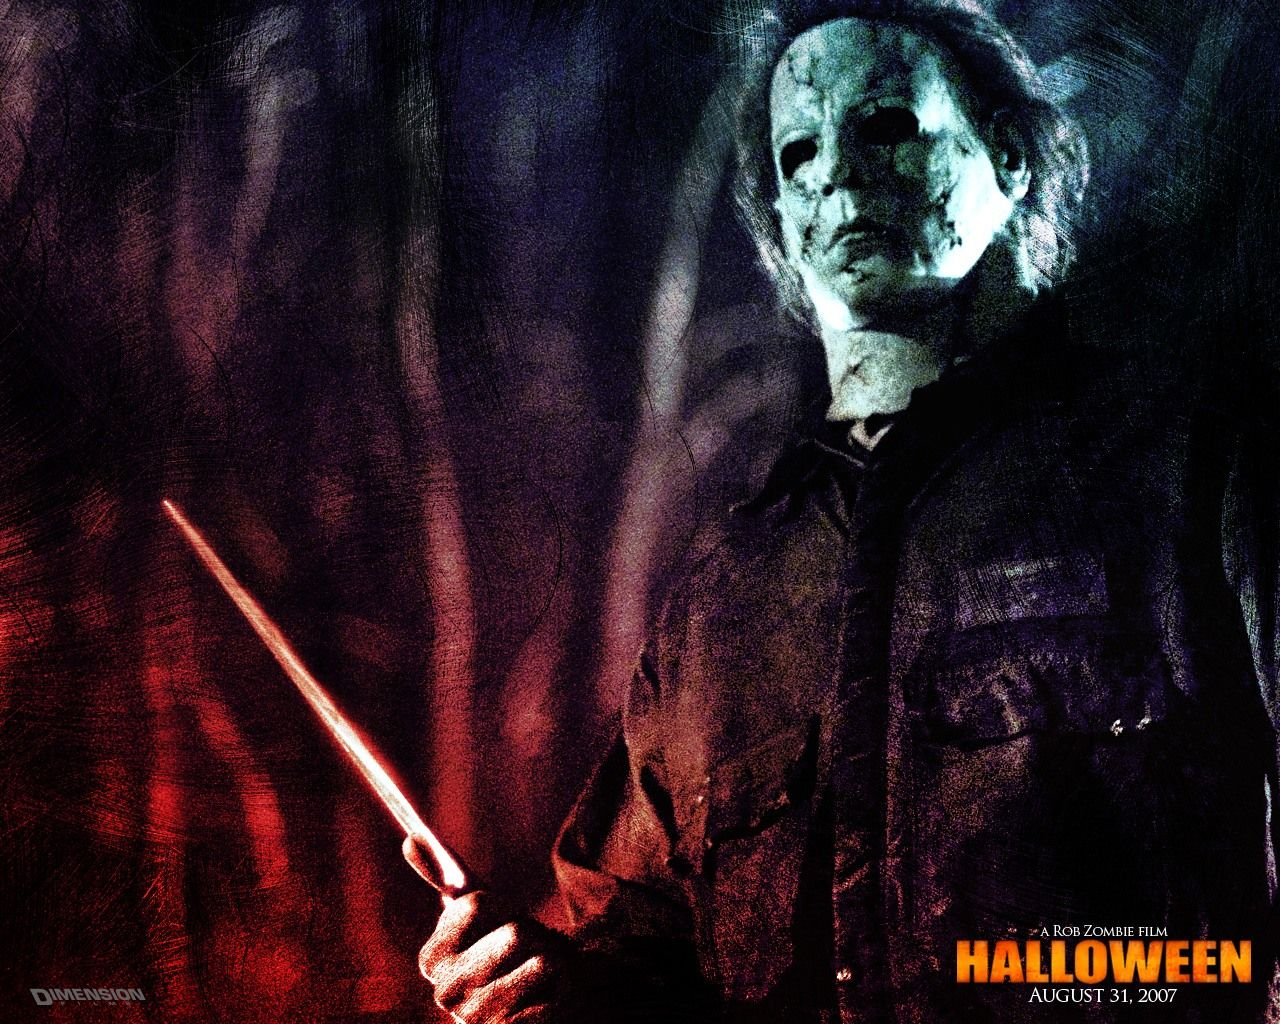 Michael Halloween Wallpaper Zombie Wallpaper Halloween Rob Zombie